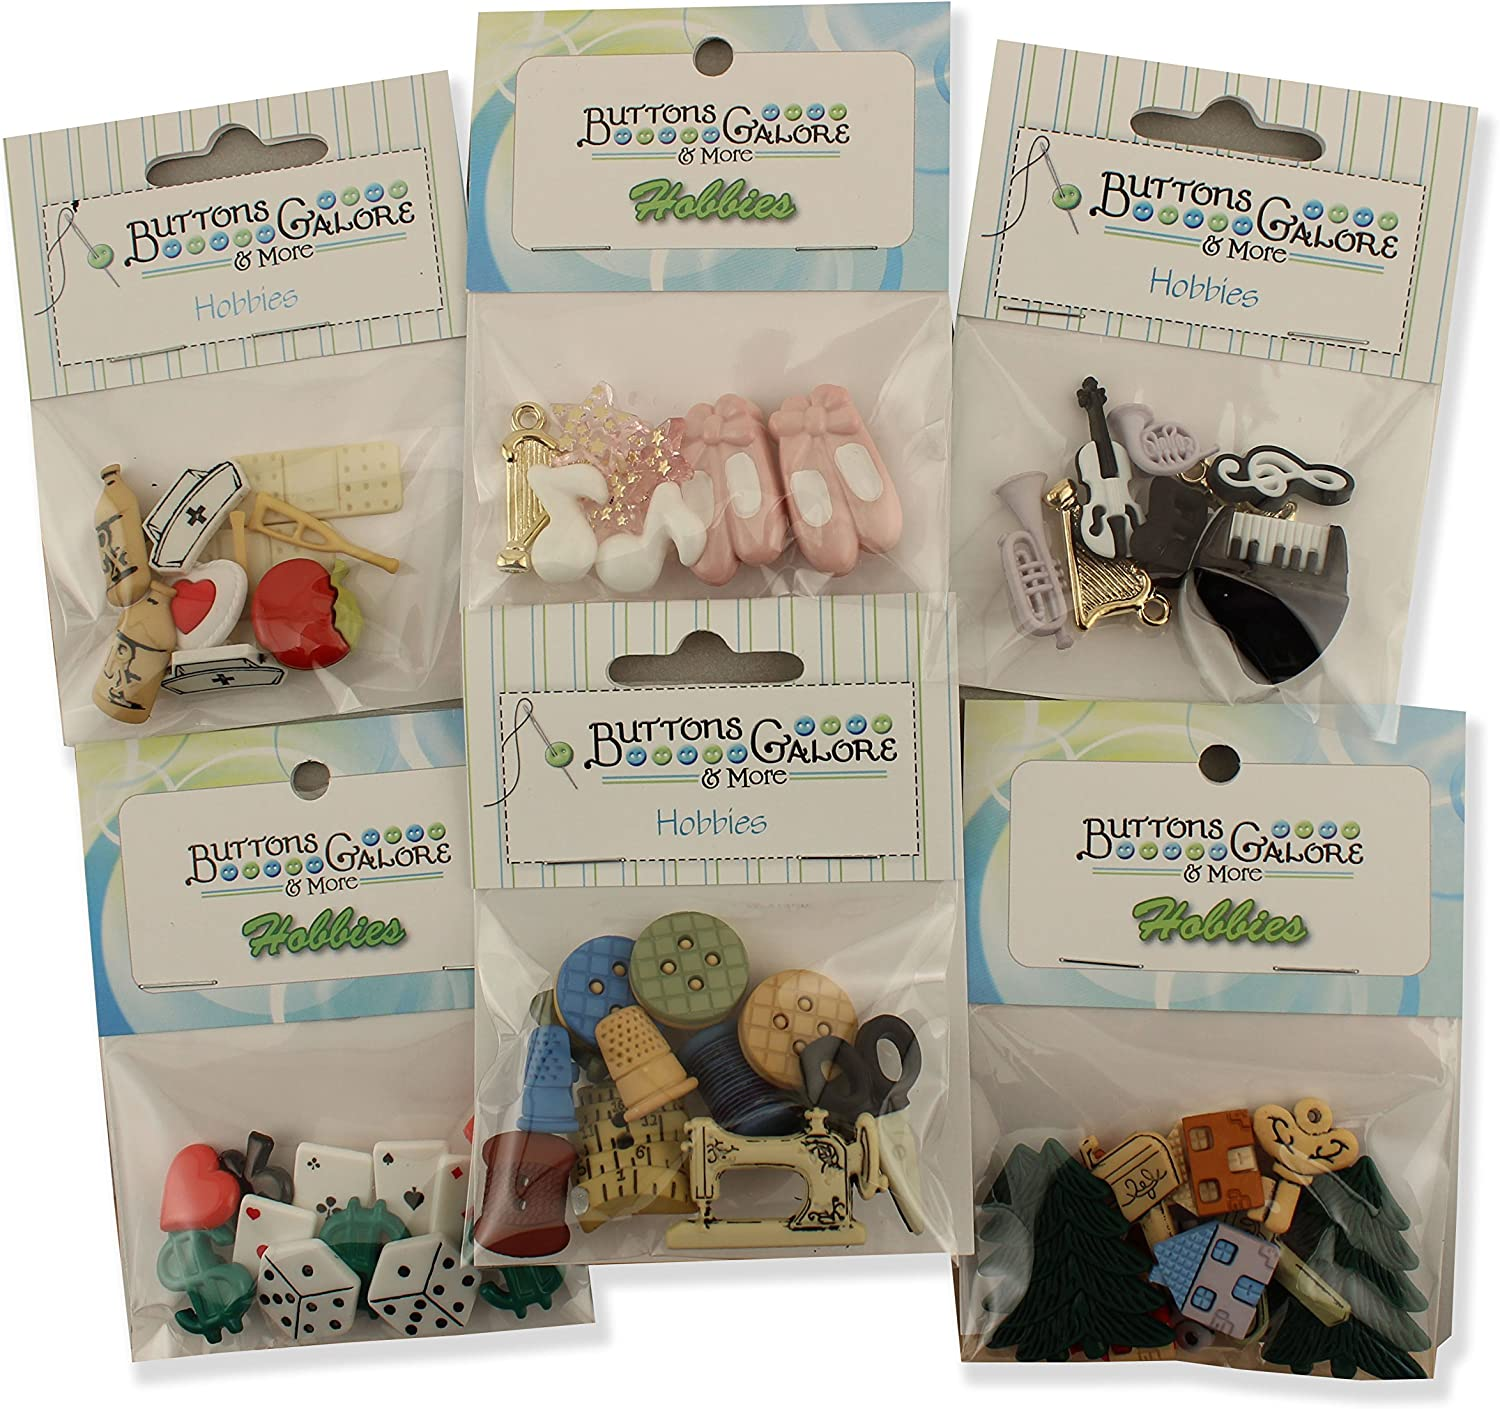 Buttons Galore Hobbies Button Theme Packs-Set of 6